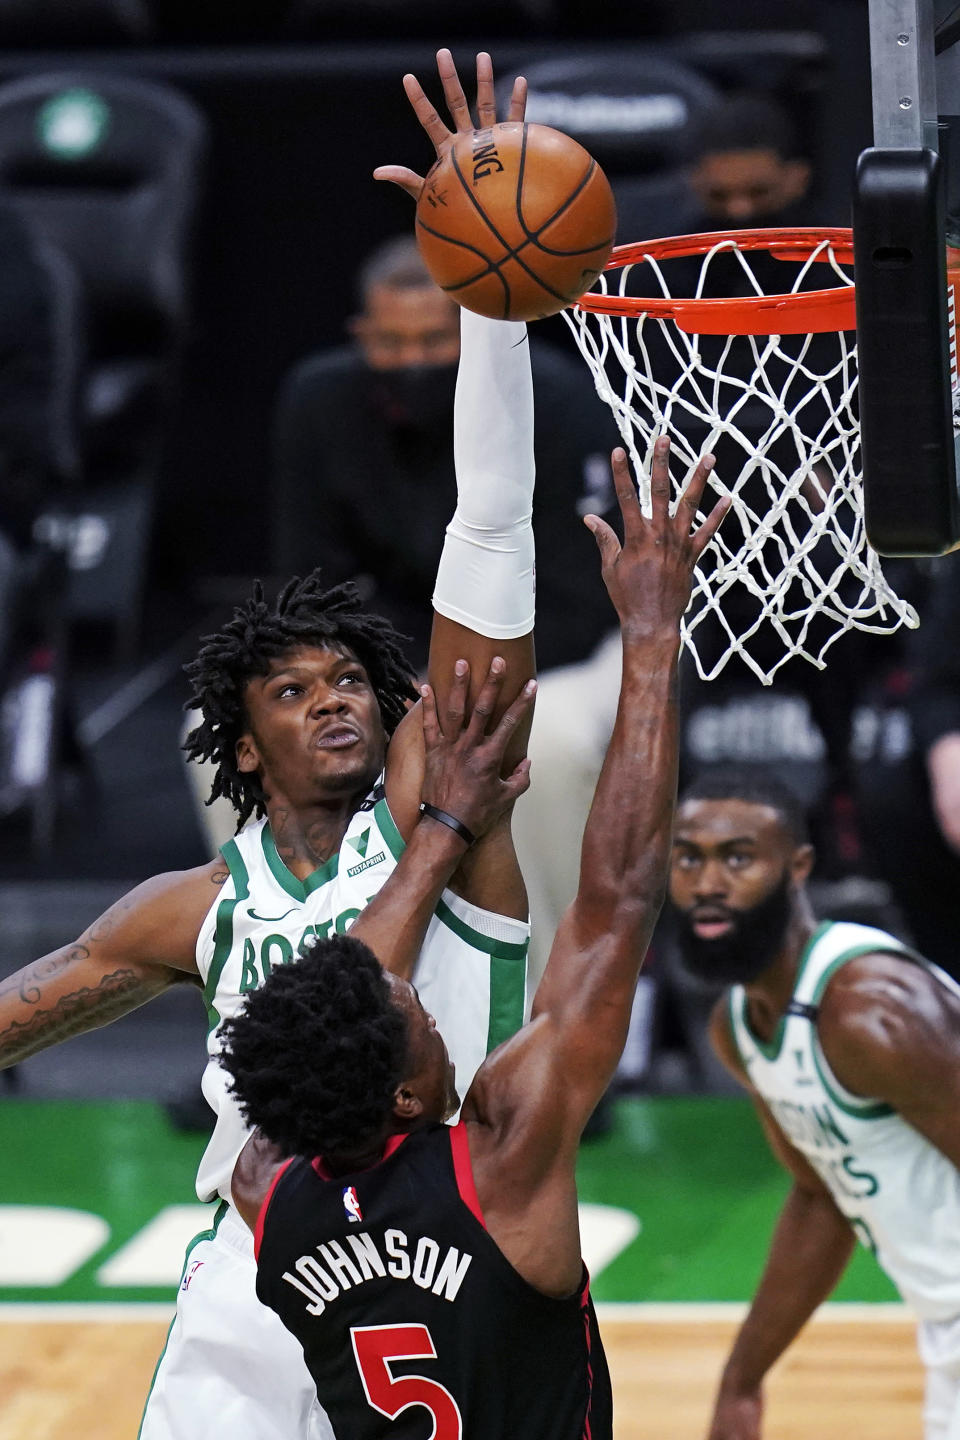 Boston Celtics center Robert Williams III, left, reaches high blocking a shot by Toronto Raptors forward Stanley Johnson (5) during the first half of an NBA basketball game, Thursday, March 4, 2021, in Boston. (AP Photo/Charles Krupa)